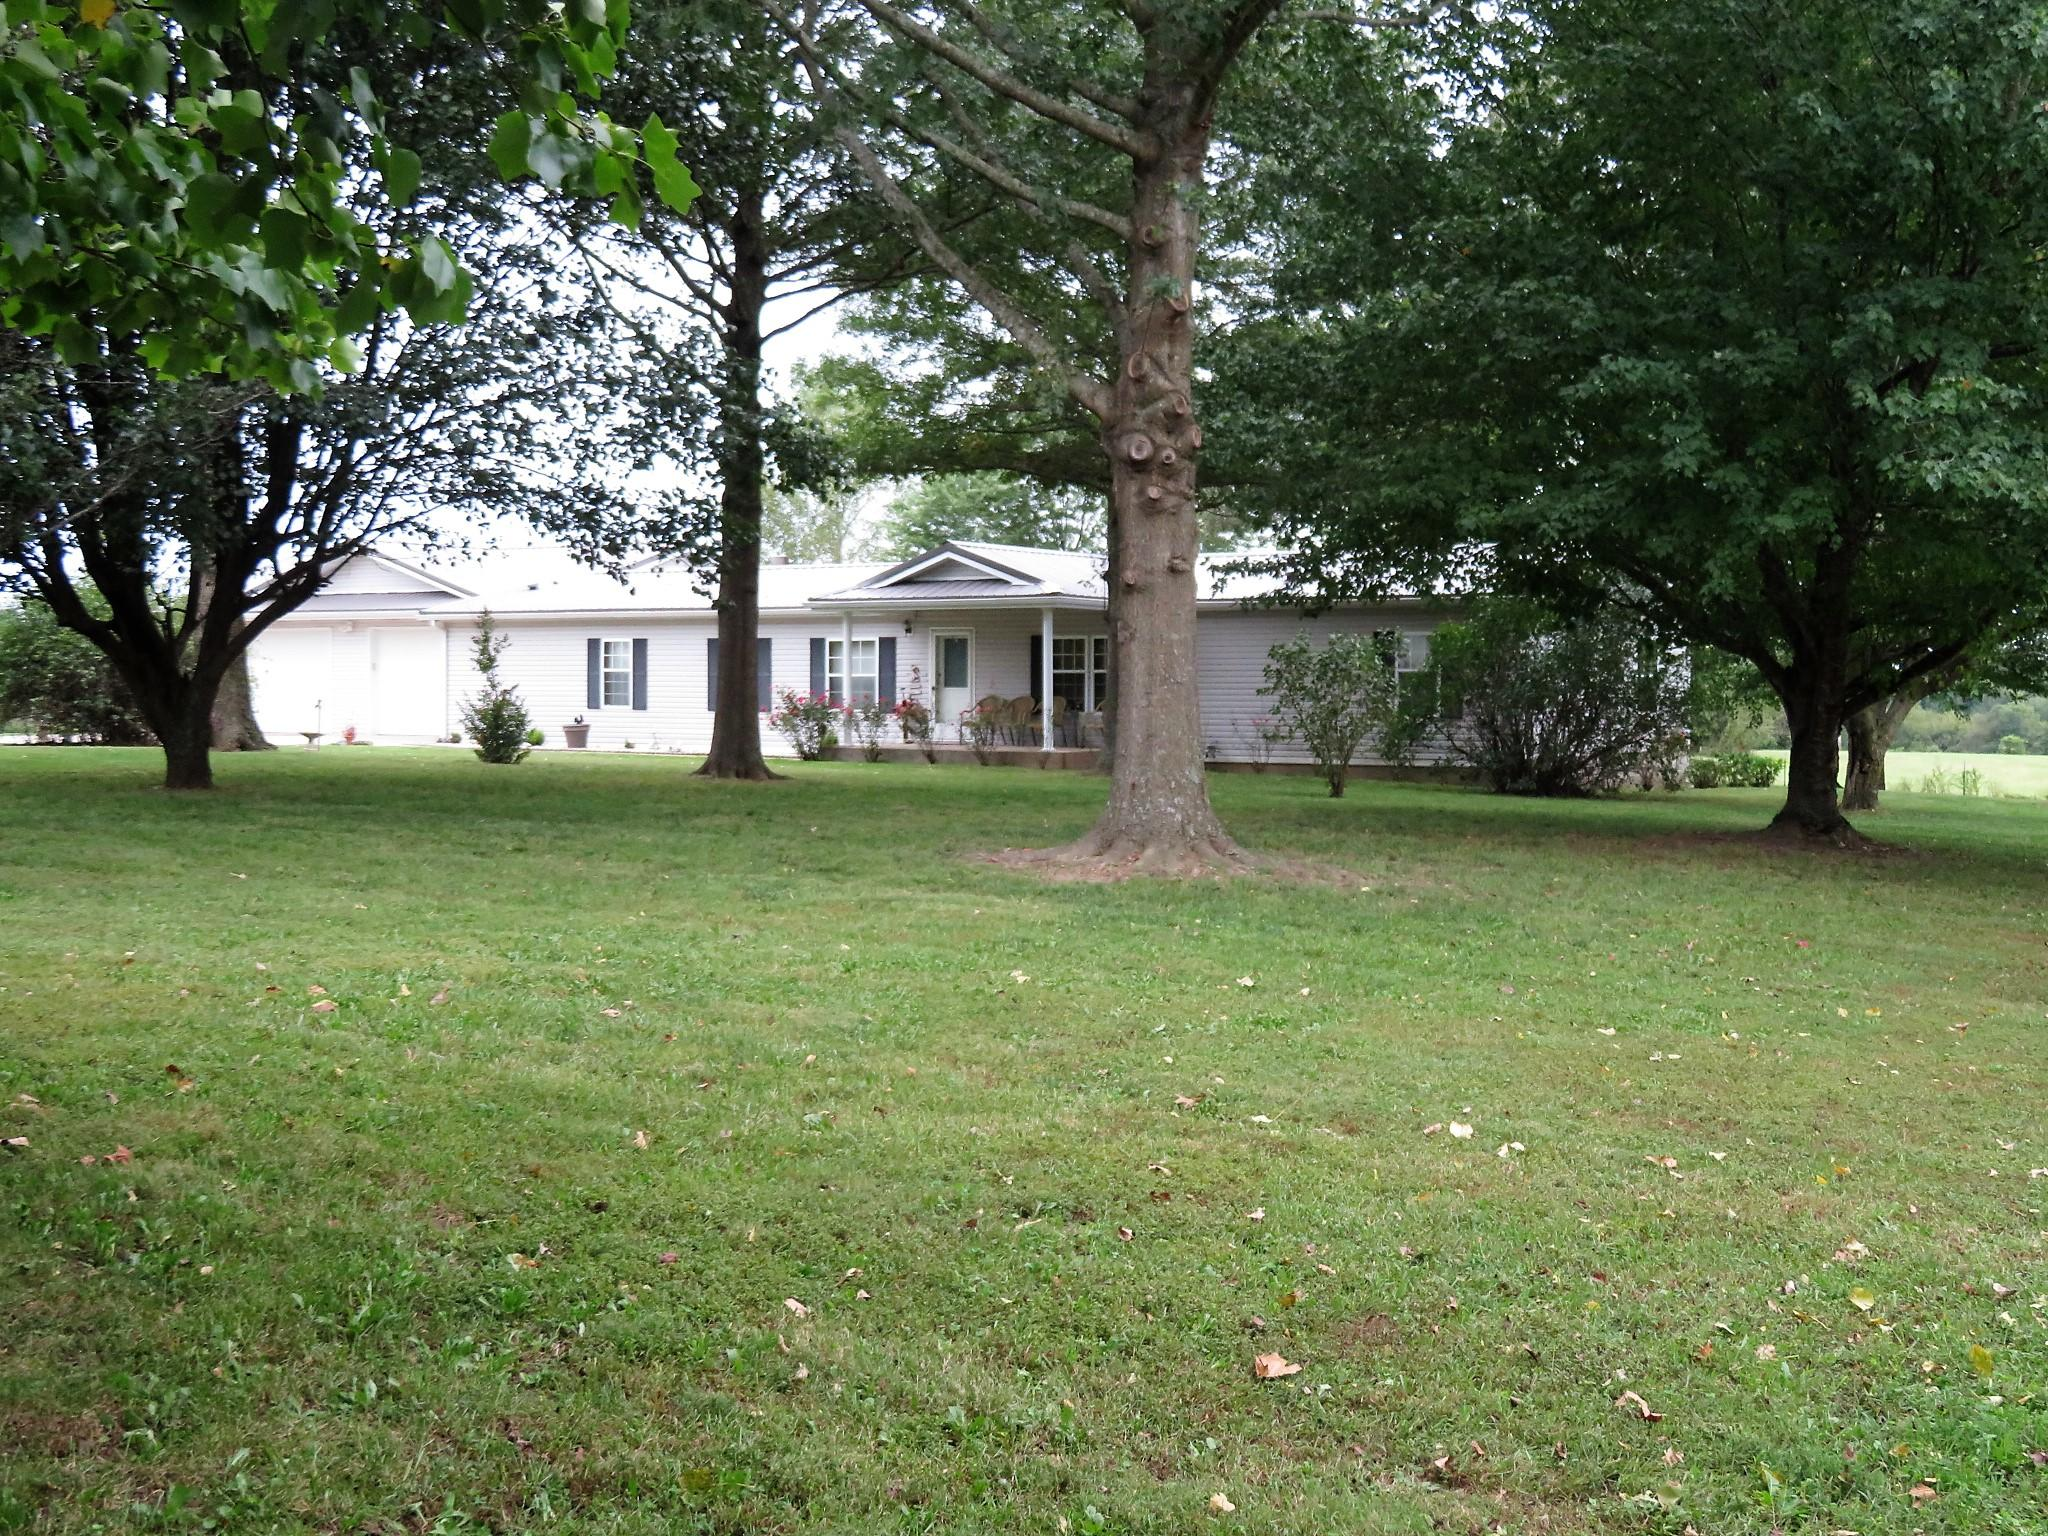 16315 Mo-state Hwy 14 Marionville, MO 65705